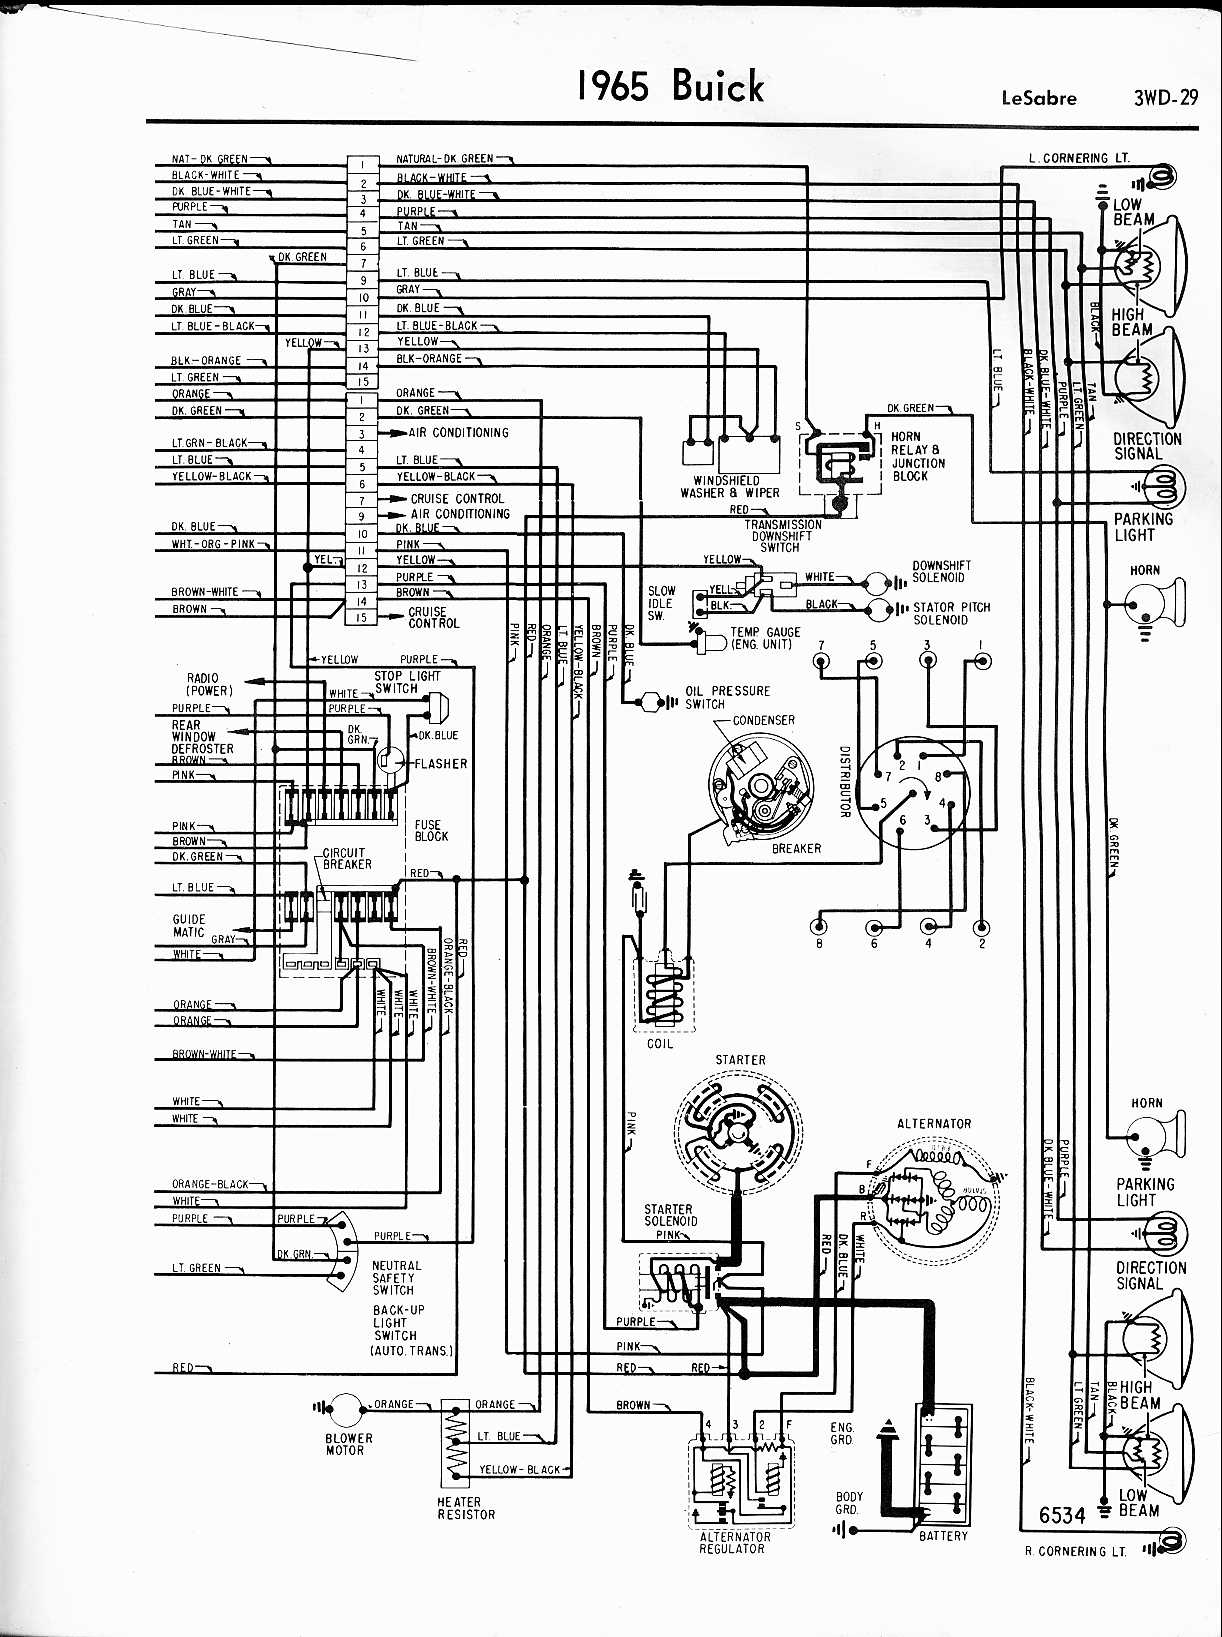 [DIAGRAM_5UK]  Buick Wiring Diagrams: 1957-1965 | 1966 Buick Special Wiring Diagram |  | The Old Car Manual Project